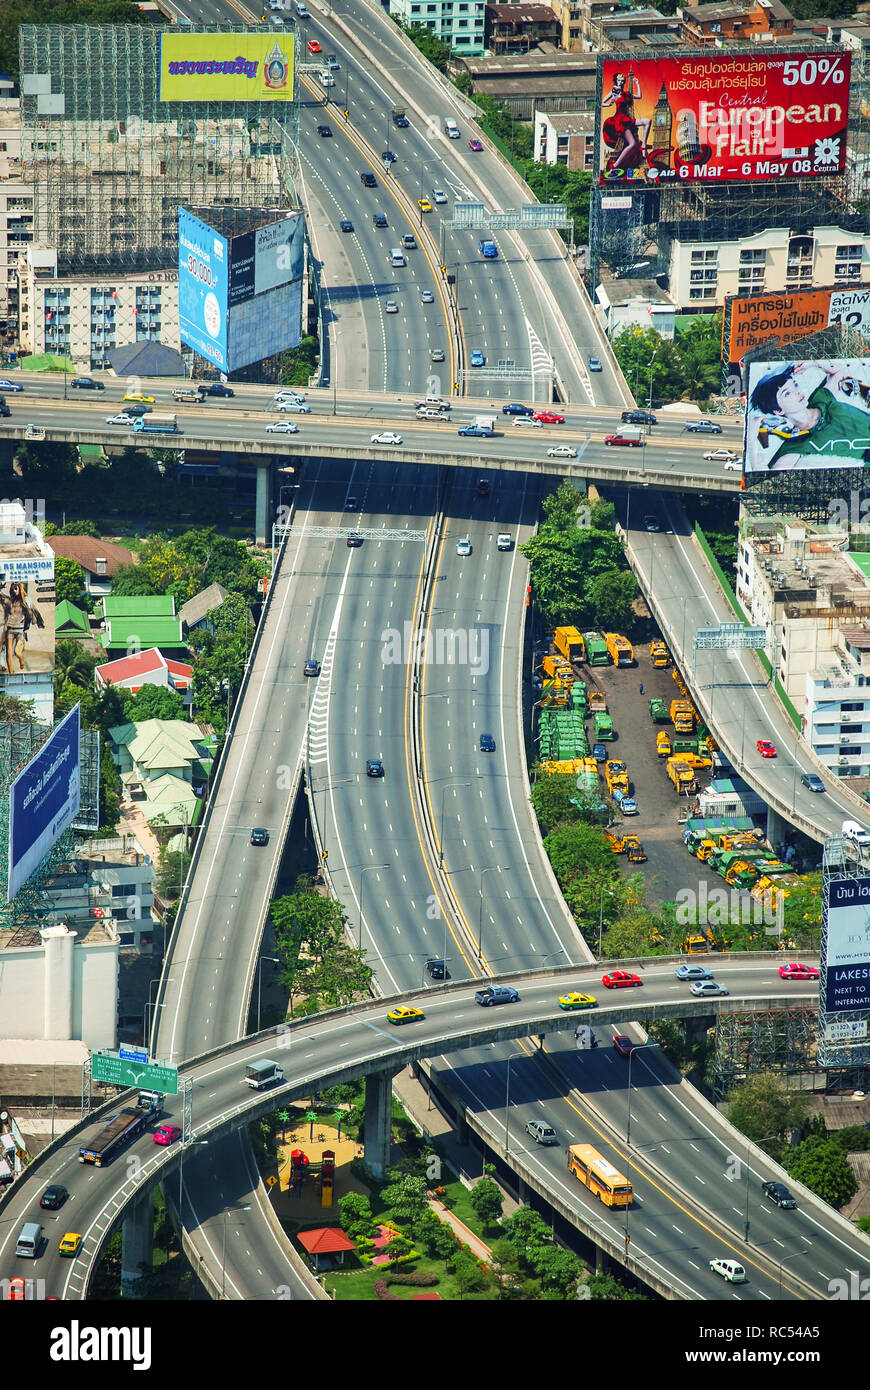 Aerial view of flyovers in Bangkok, Thailand - Stock Image